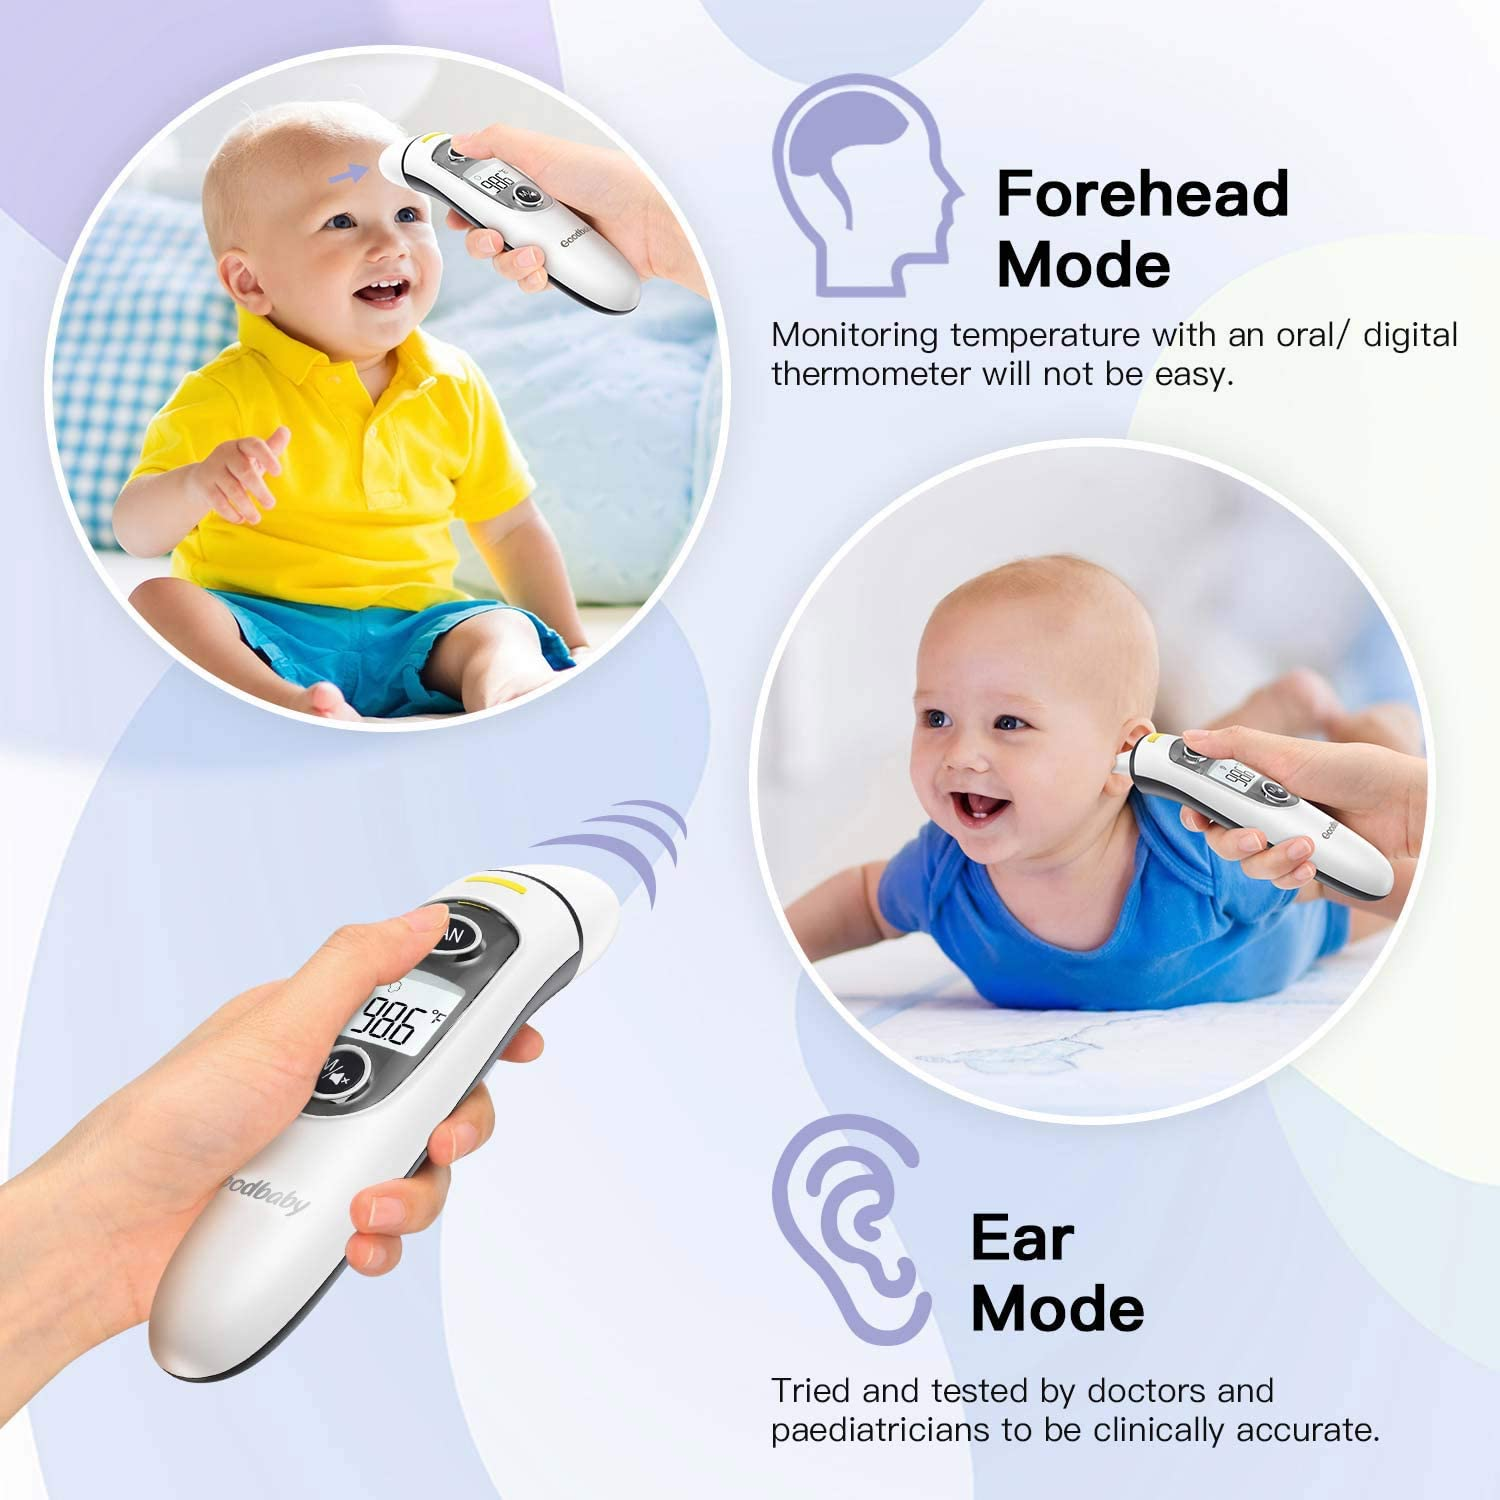 [2020 Updated] Goodbaby Ear Thermometer –Ear and Forehead Function with Fever Alarm and Memory Function – Ideal for Babies, Infants, Children, Adults, Indoor, and Outdoor Use